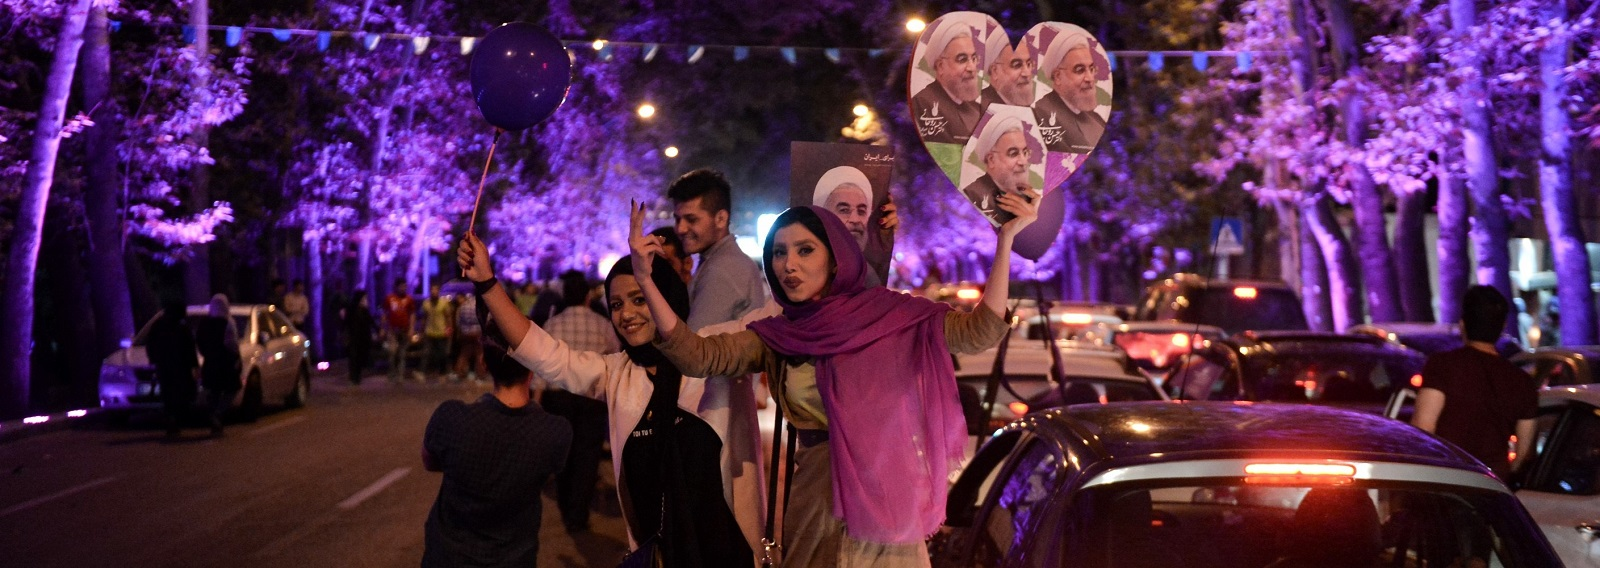 In Tehran, supporters of President Hassan Rouhani celebrate the election result. (Photo by Fatemeh Bahrami/Getty Images)